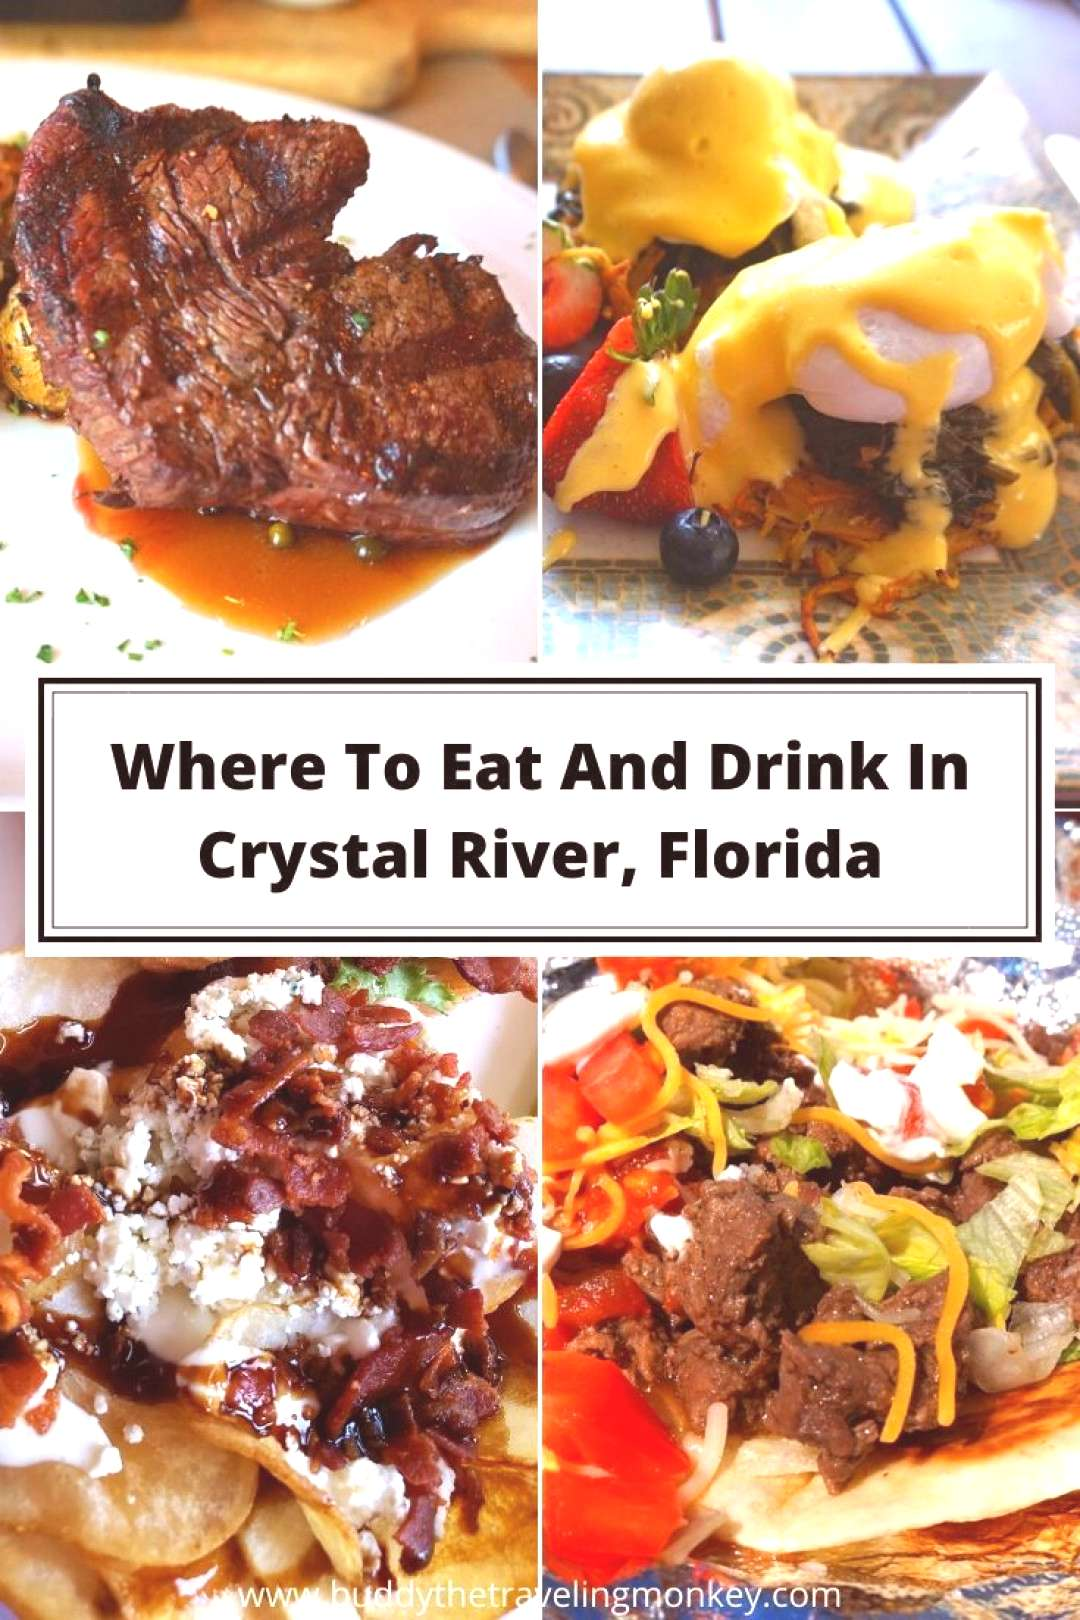 Where To Eat And Drink In Crystal River, Florida We list where to eat and drink in Crystal River, F